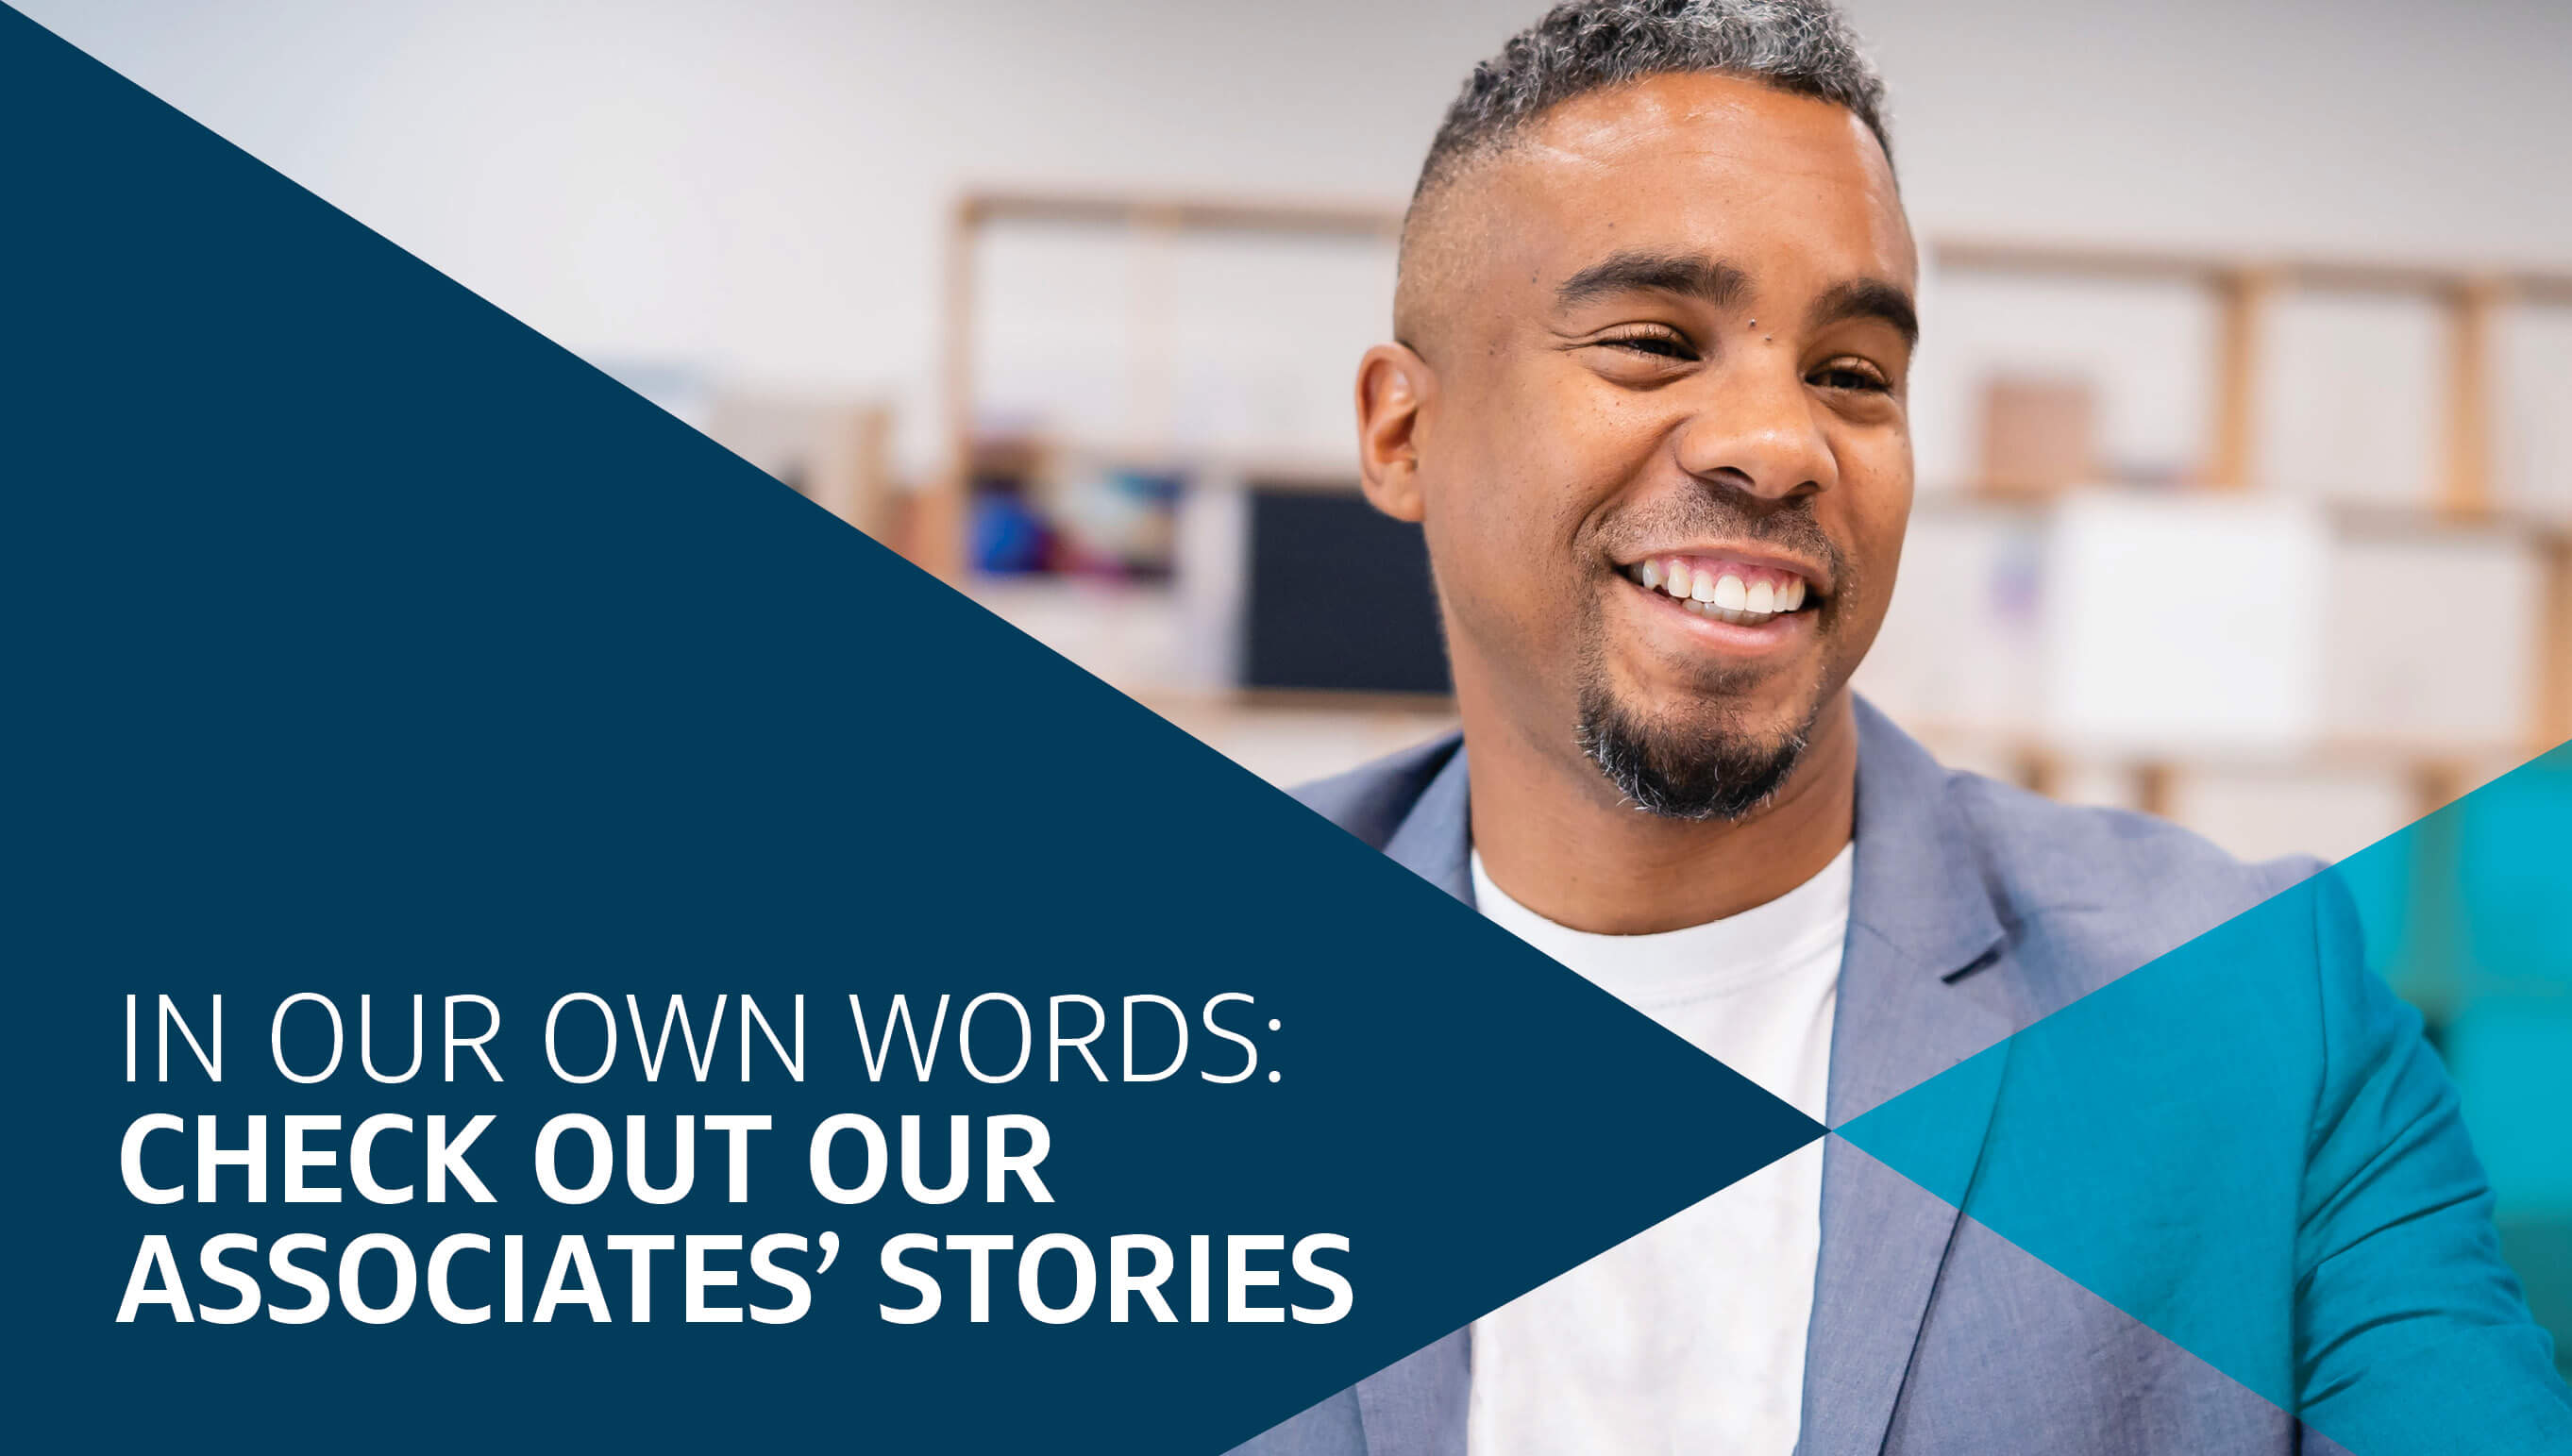 In our own words: check out our Associate's stories.